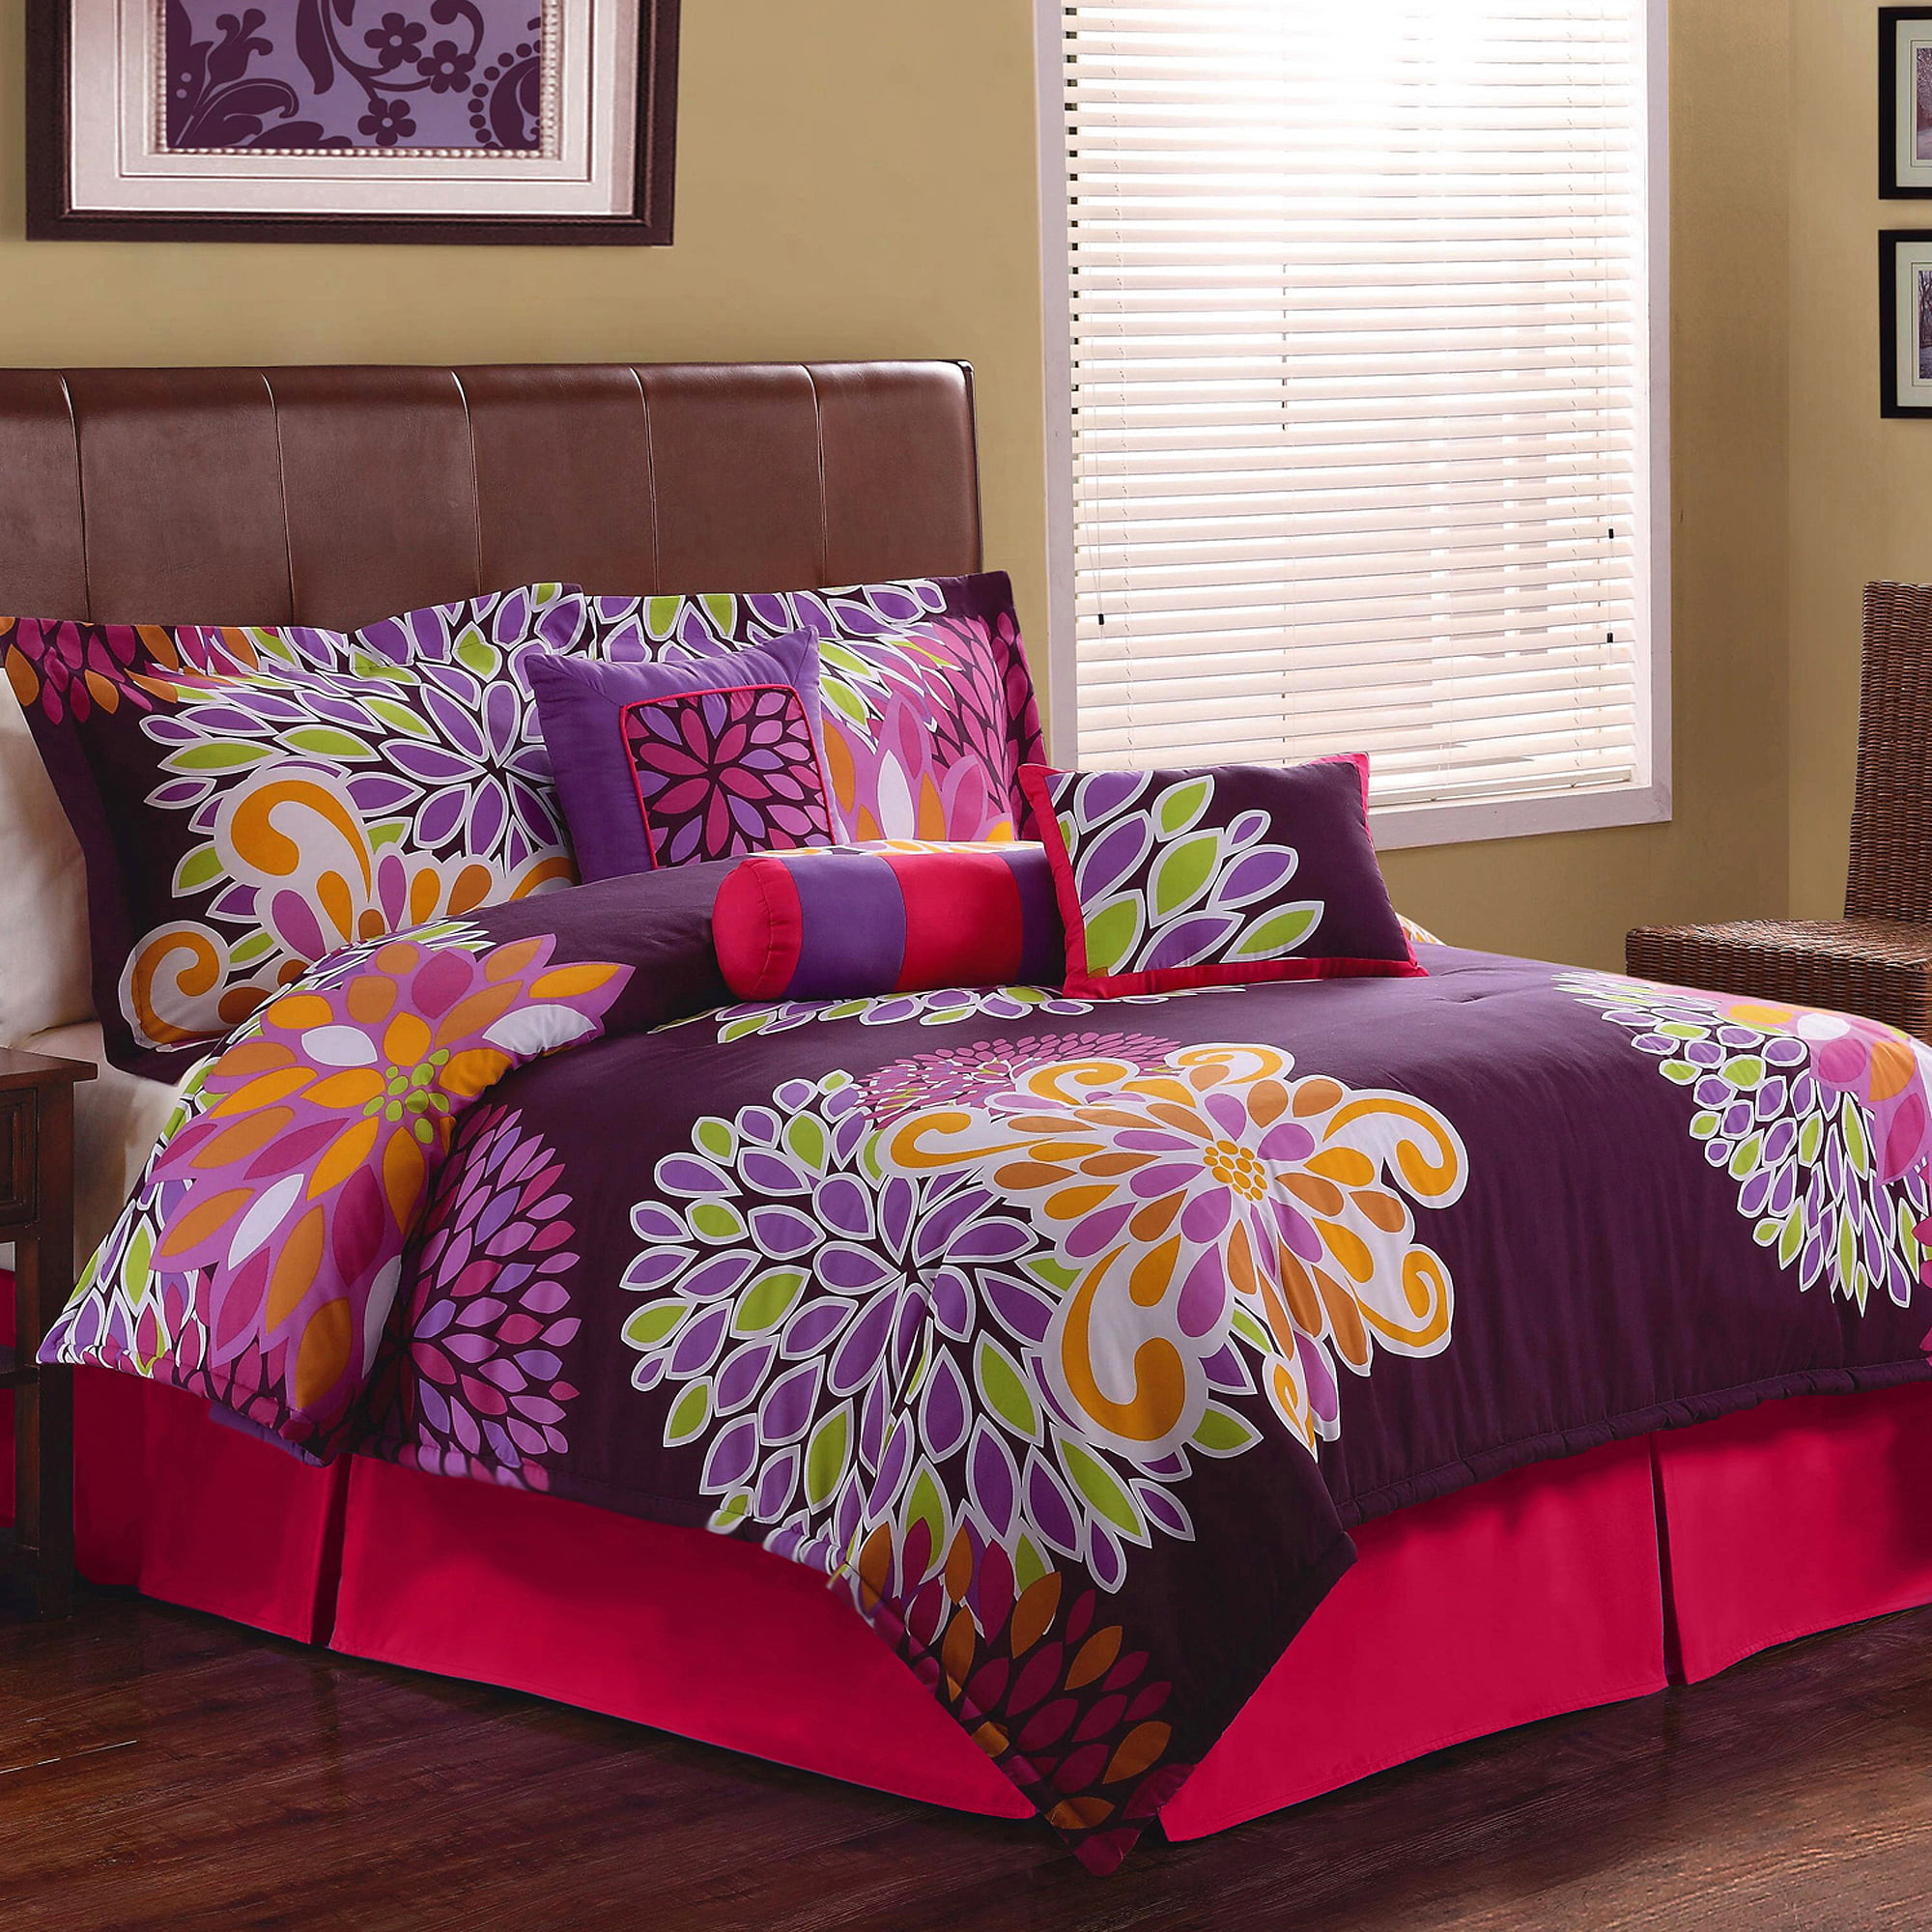 Bedding sets for teenage girls walmart - Bedding Sets For Teenage Girls Walmart 44